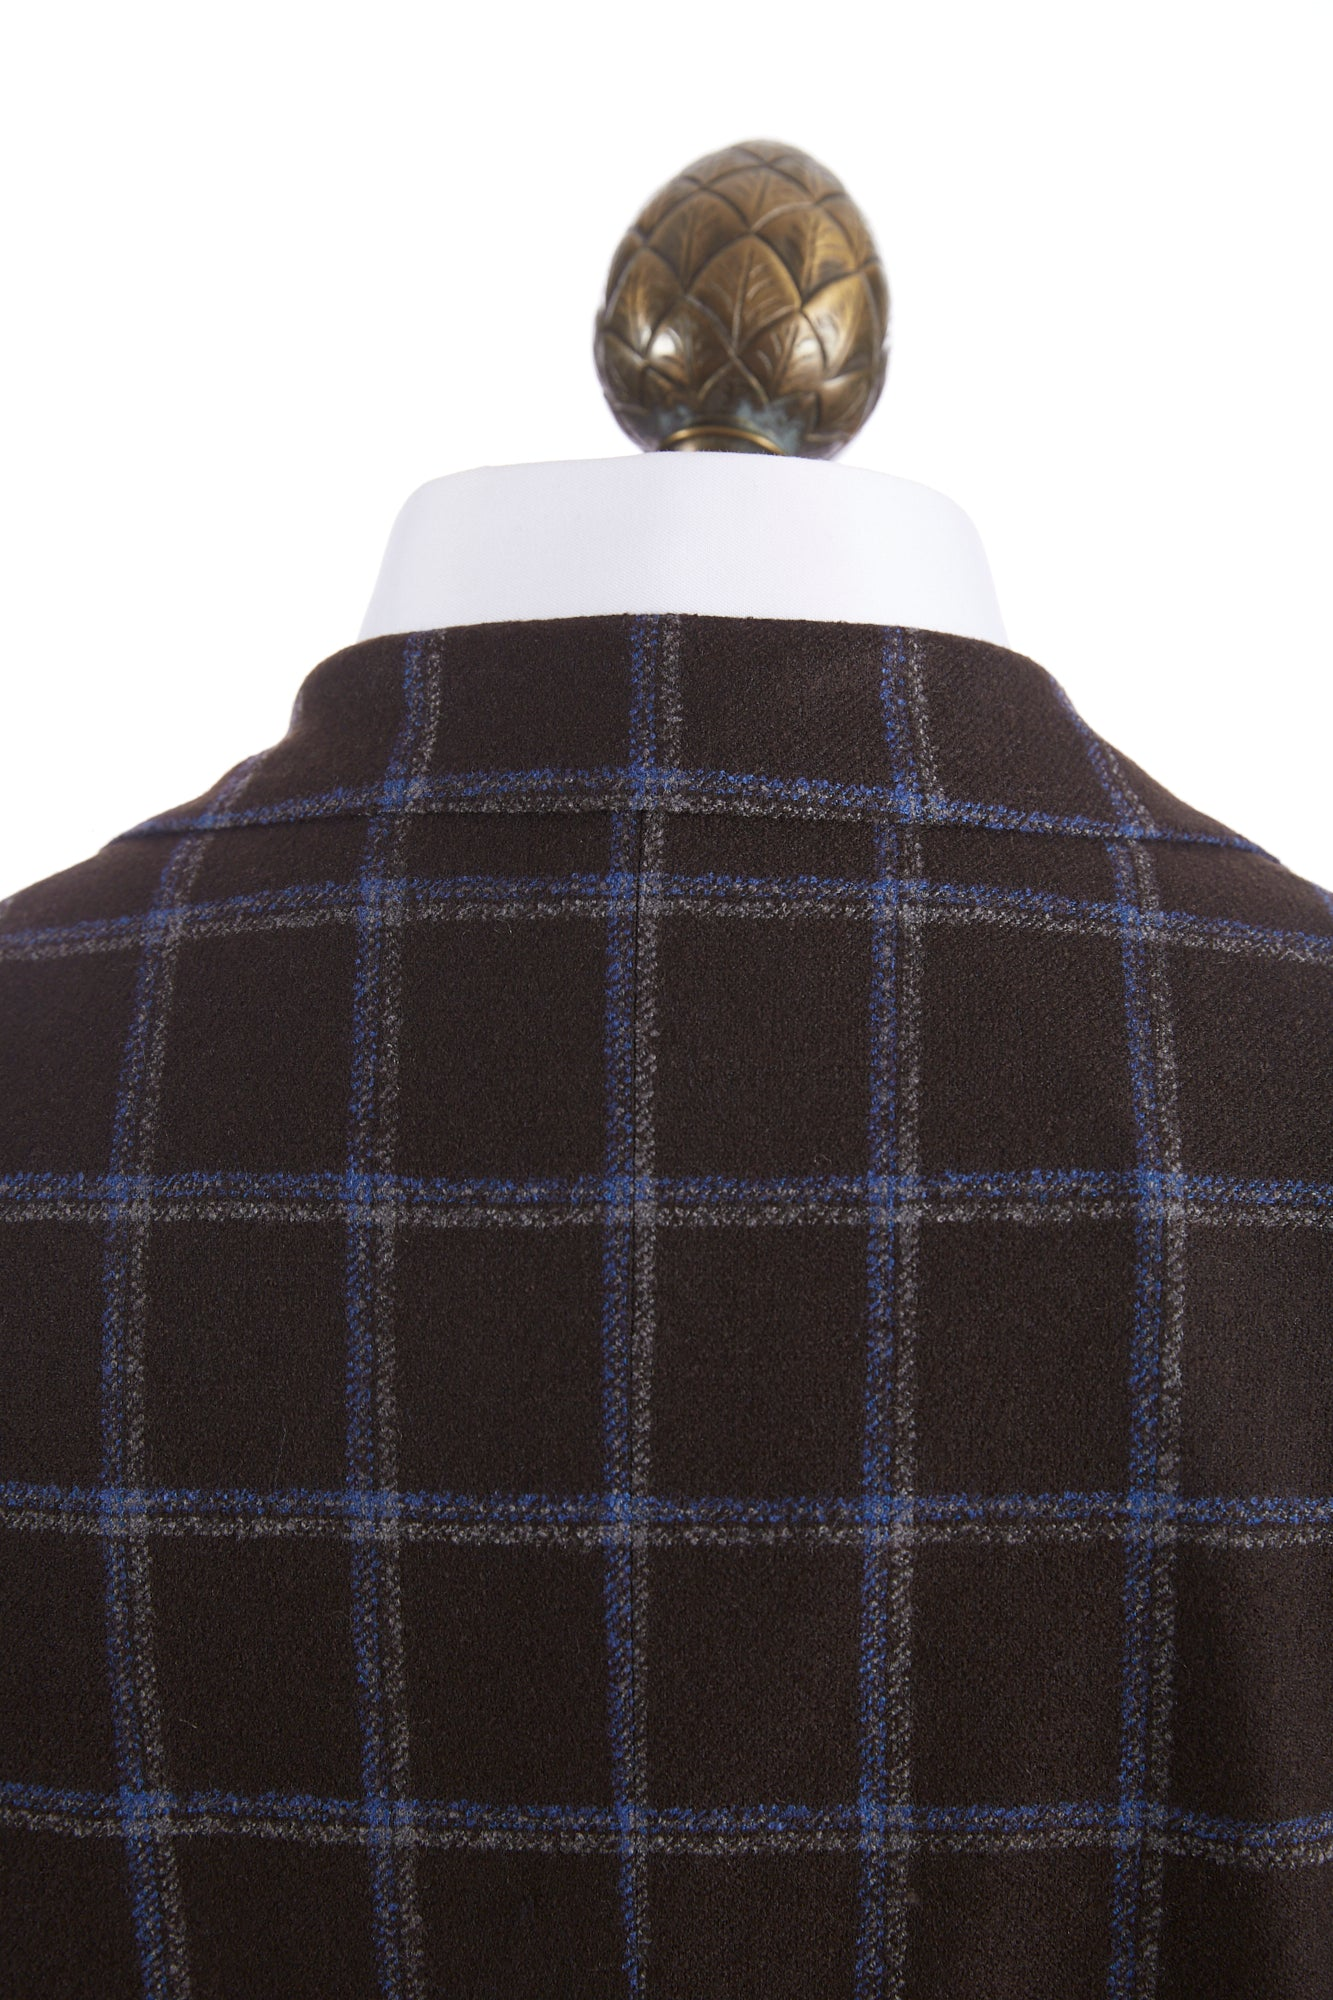 Luigi Bianchi Mantova Brown Windowpane Wool Sport Jacket - Sport Jackets - L.B.M. 1911 - LALONDE's